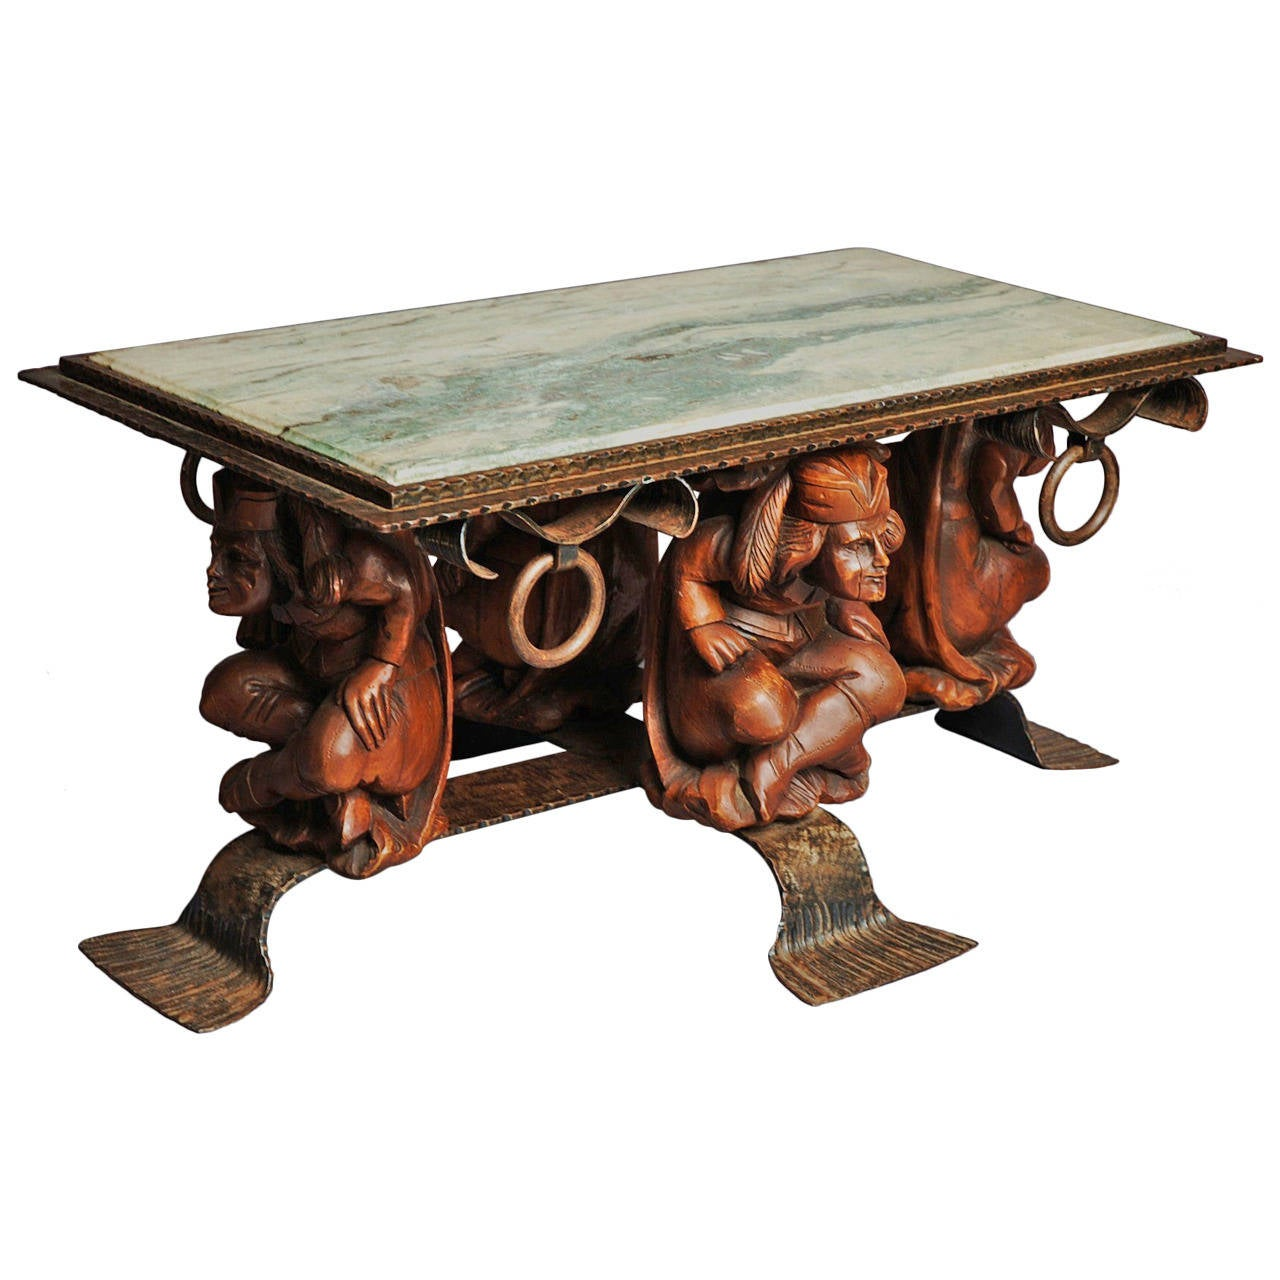 Decorative marble top coffee table for sale at 1stdibs Coffee tables with marble tops